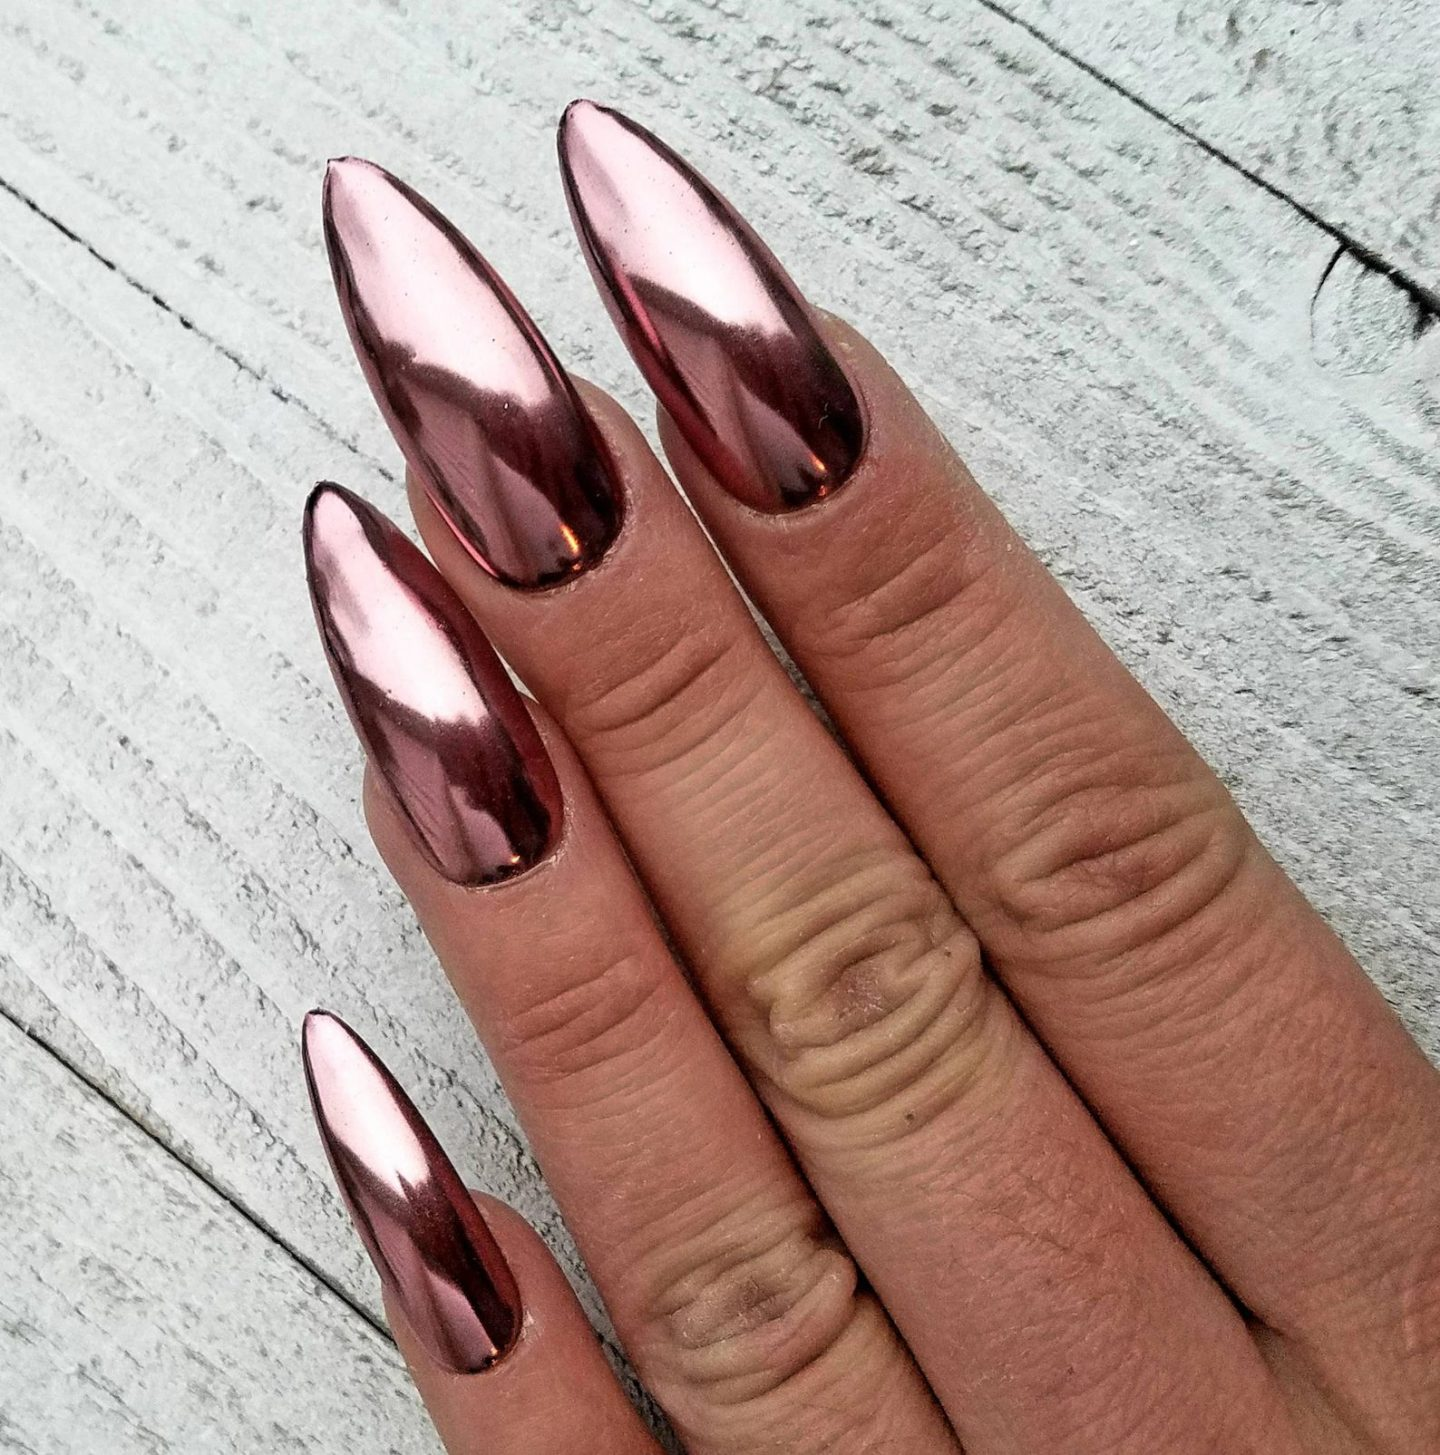 Long metallic rose gold nails with chrome effect